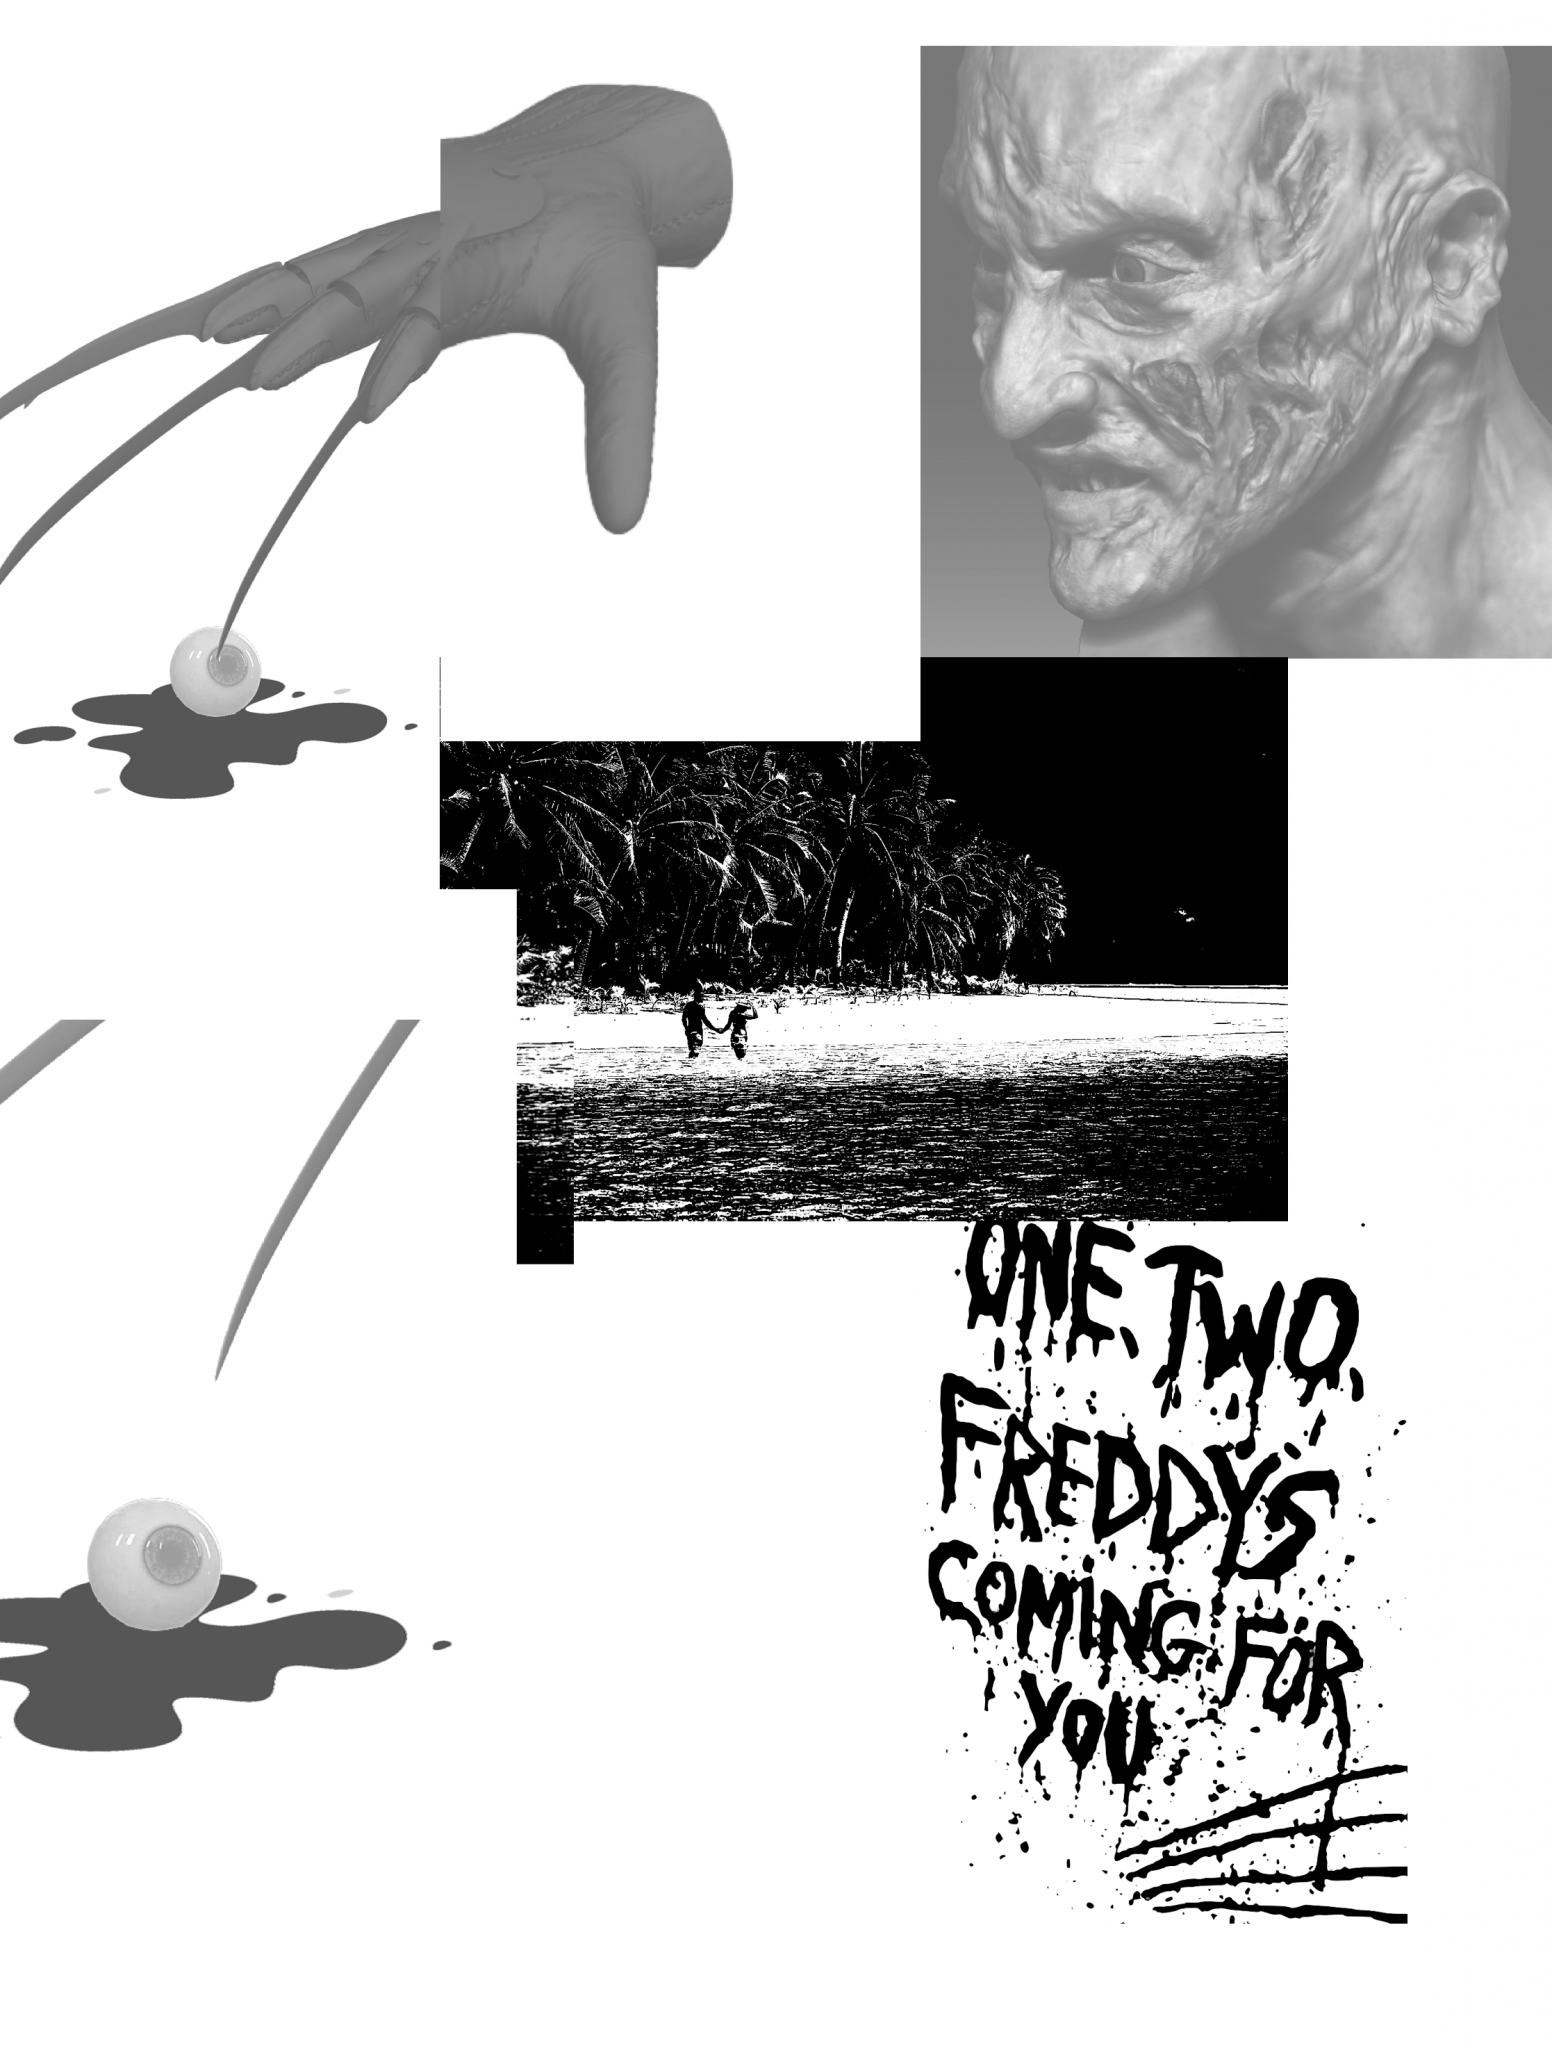 Freddy Island 𝑏𝑦 Chaotic Nightslayer